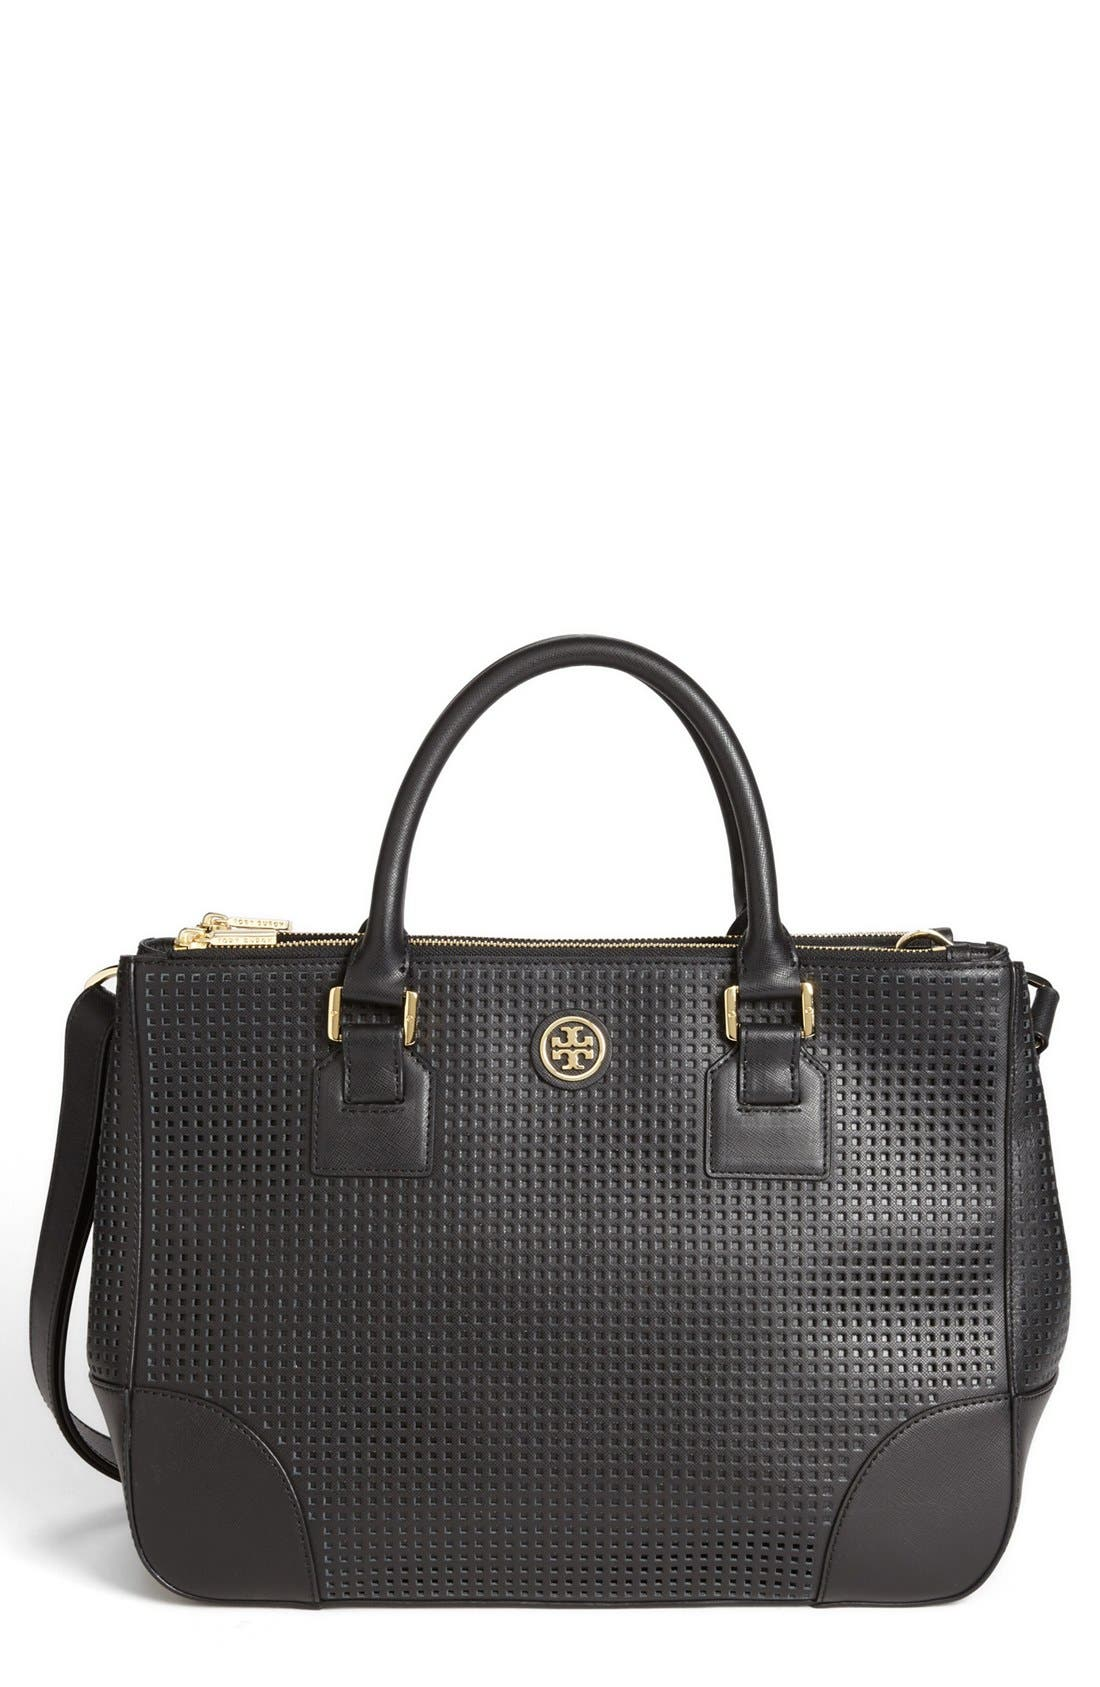 'Robinson' Double Zip Perforated Leather Tote,                             Main thumbnail 1, color,                             001